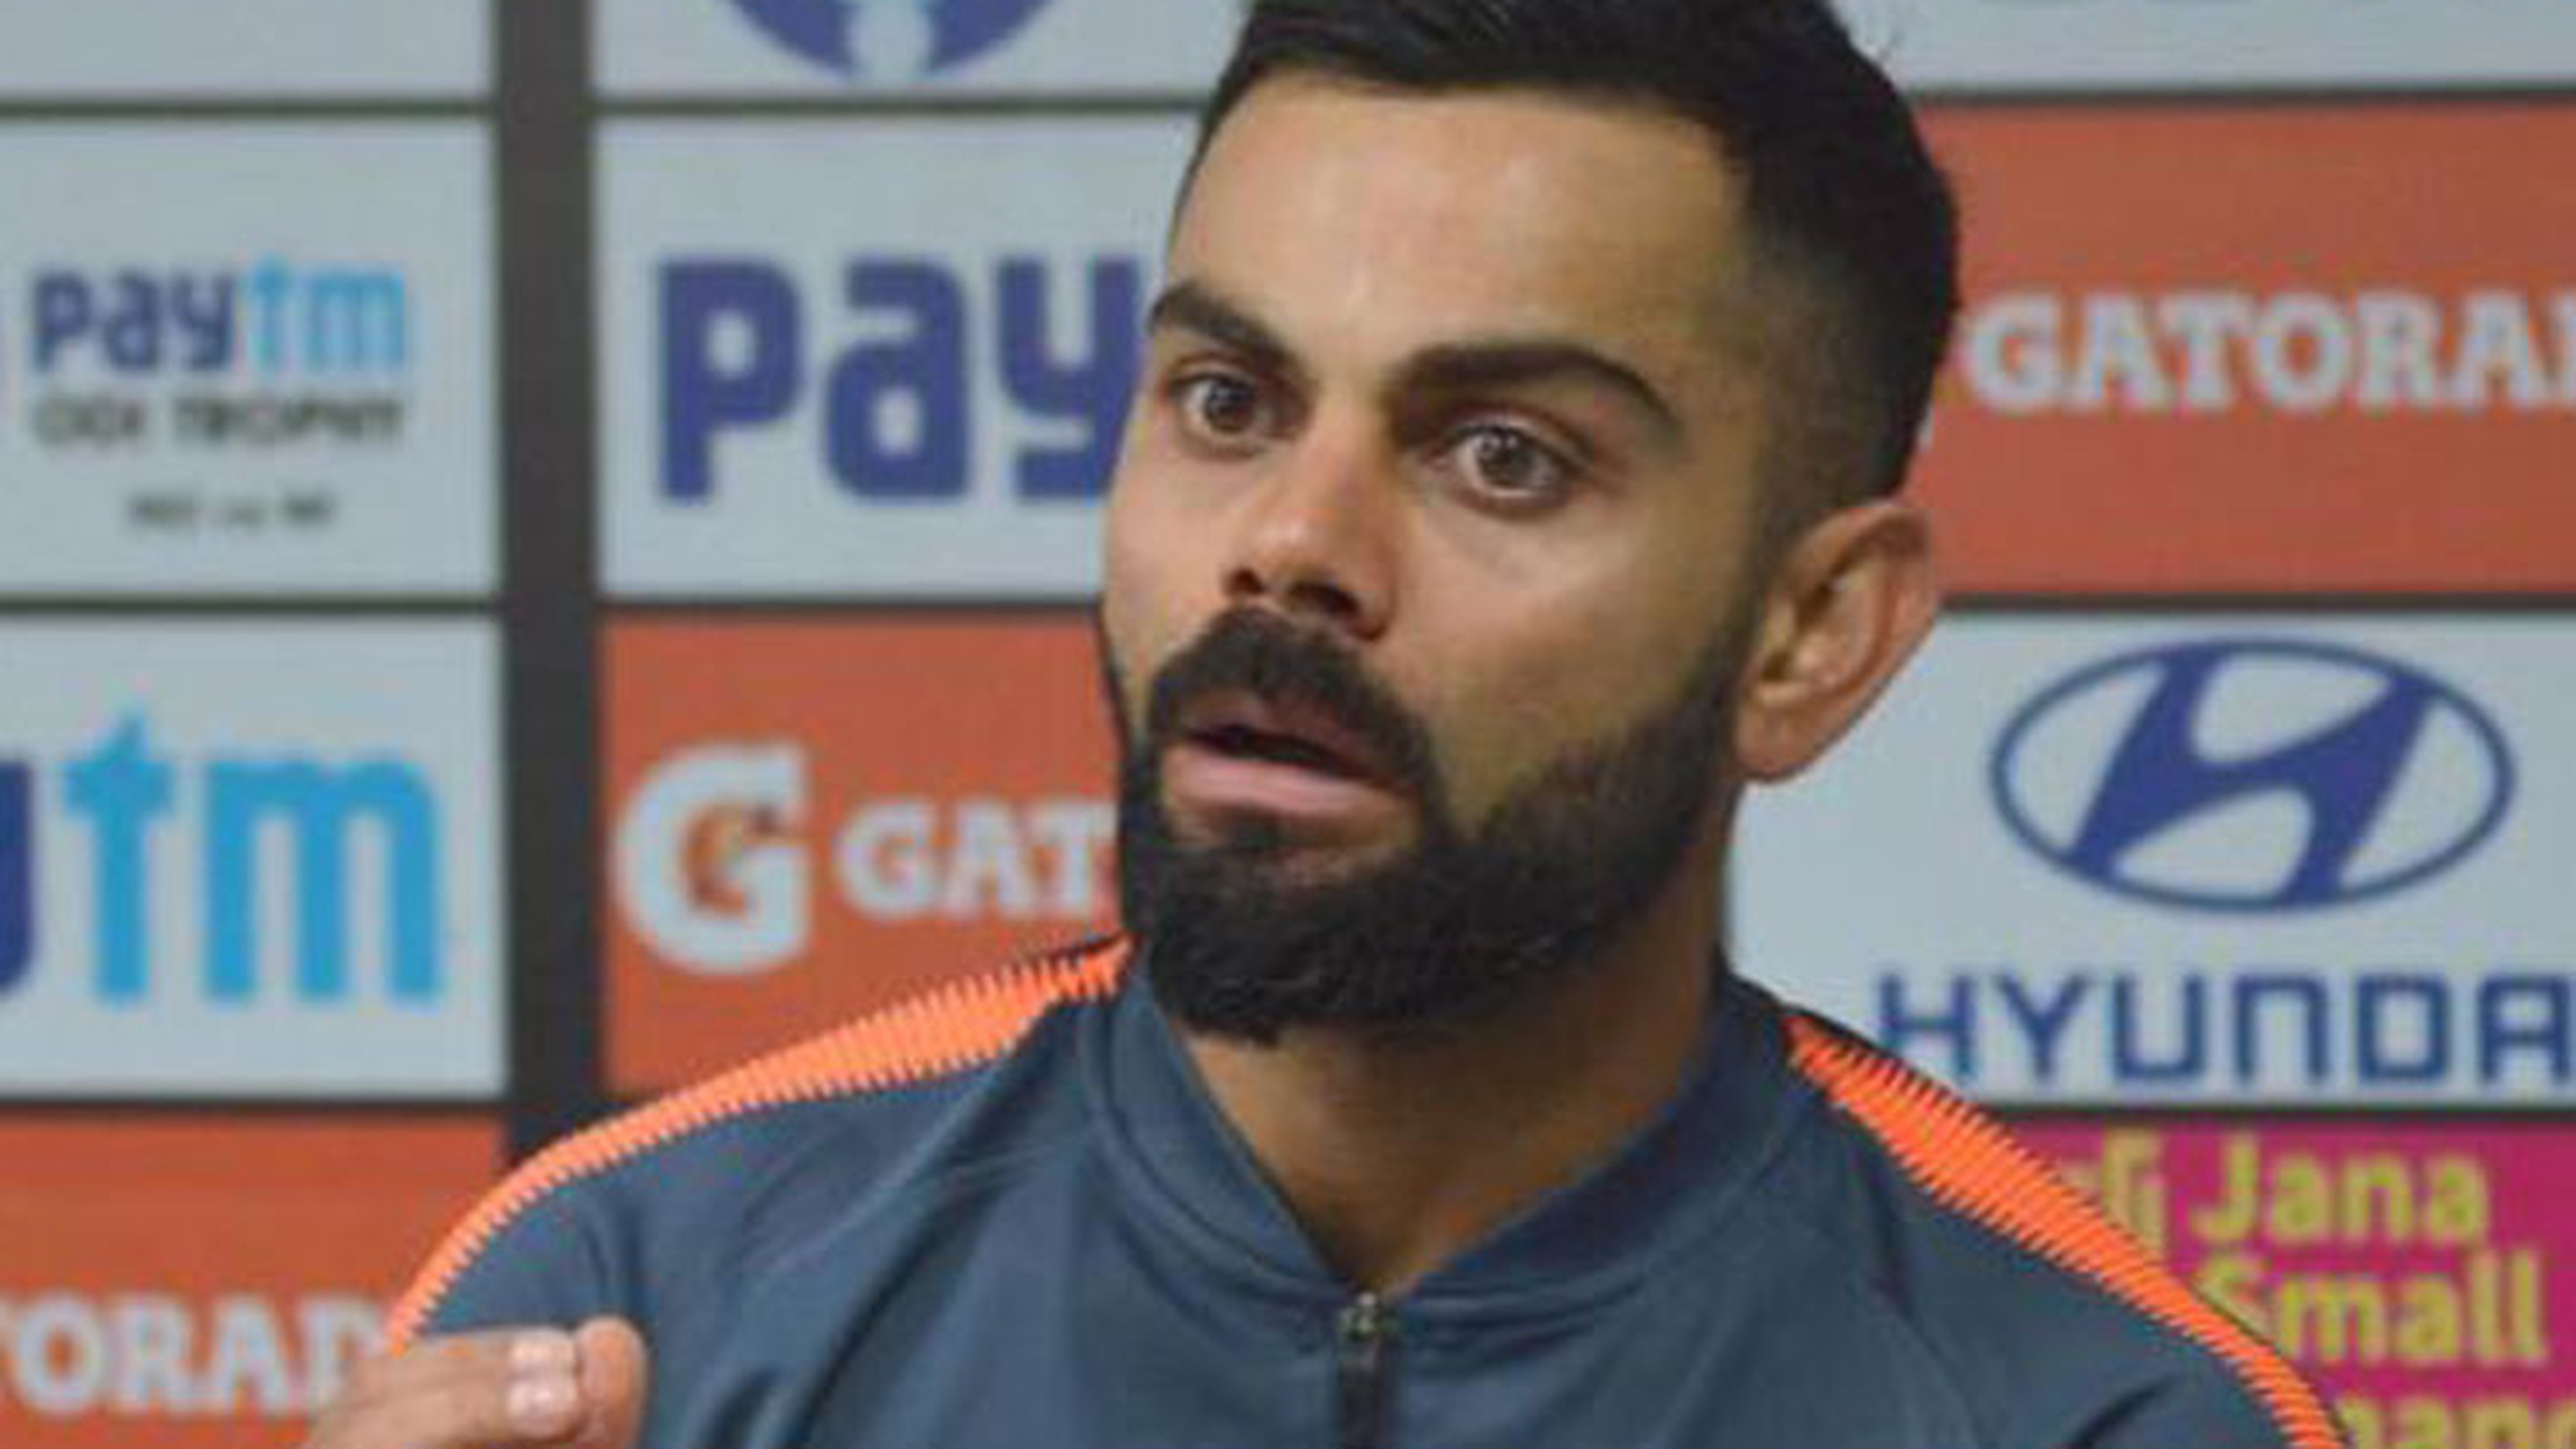 Virat Kohli said that he will stick by what the nation wants to do and what the BCCI decides to do.